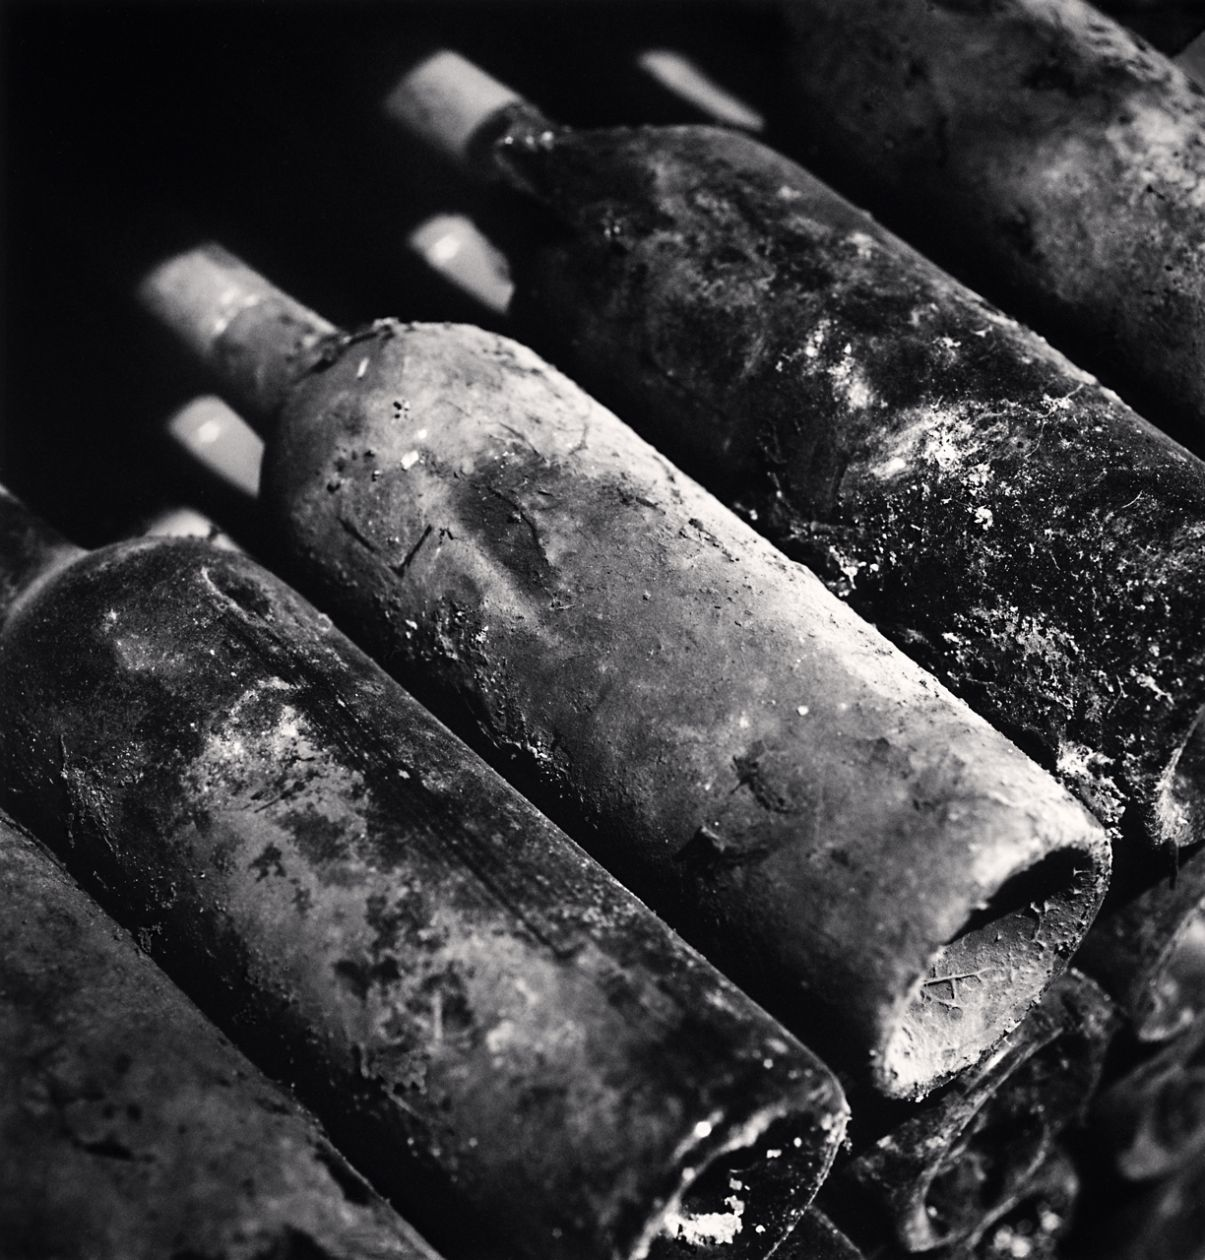 Chateau Lafite Rothschild, Study 21, Bordeaux (2012) by Michael Kenna